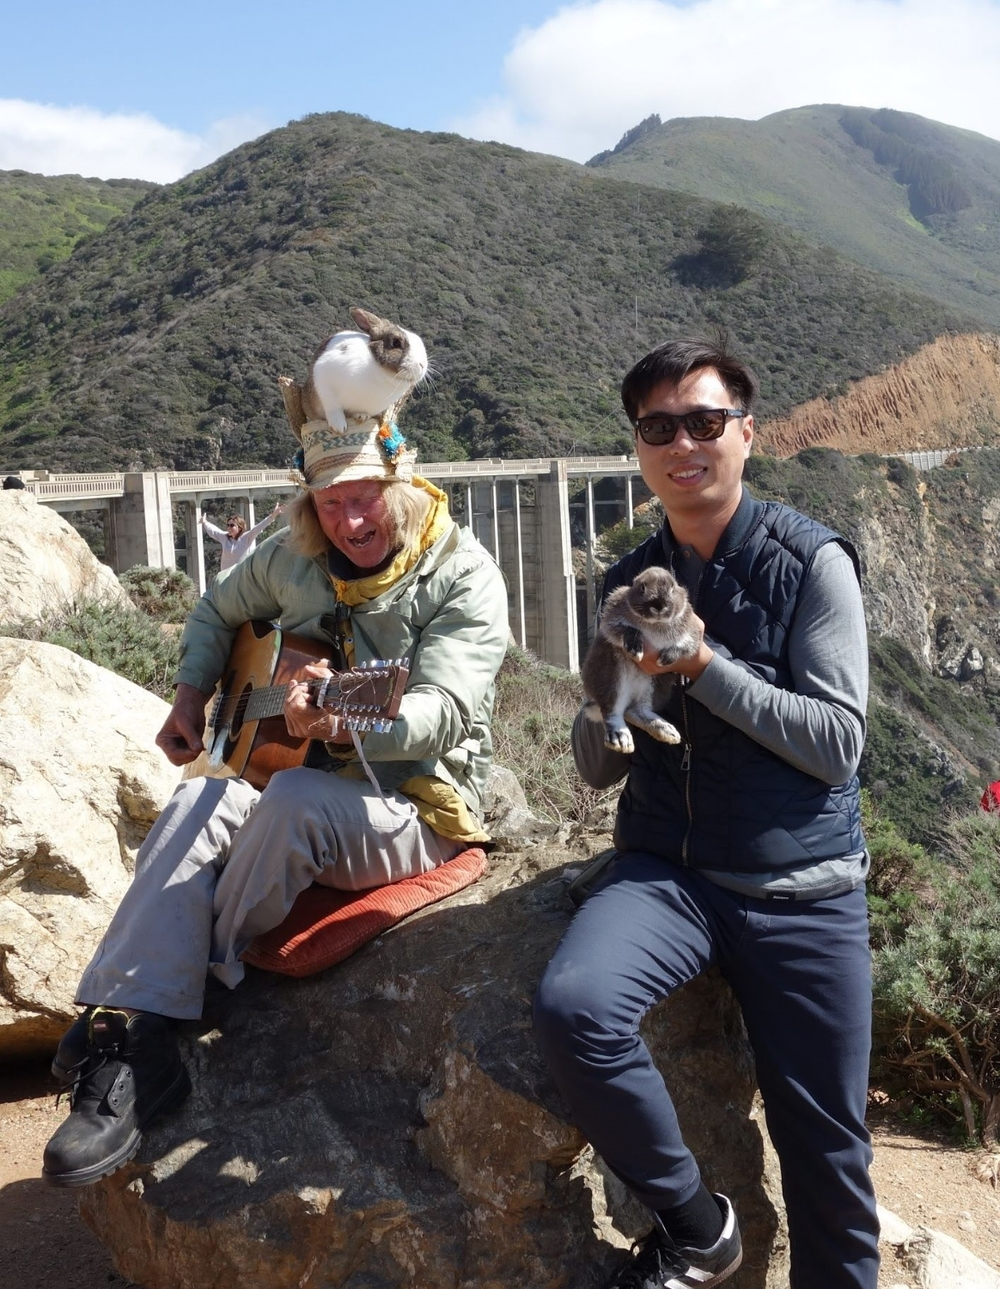 Me (on the right) with some fun & unusual characters in Big Sur.